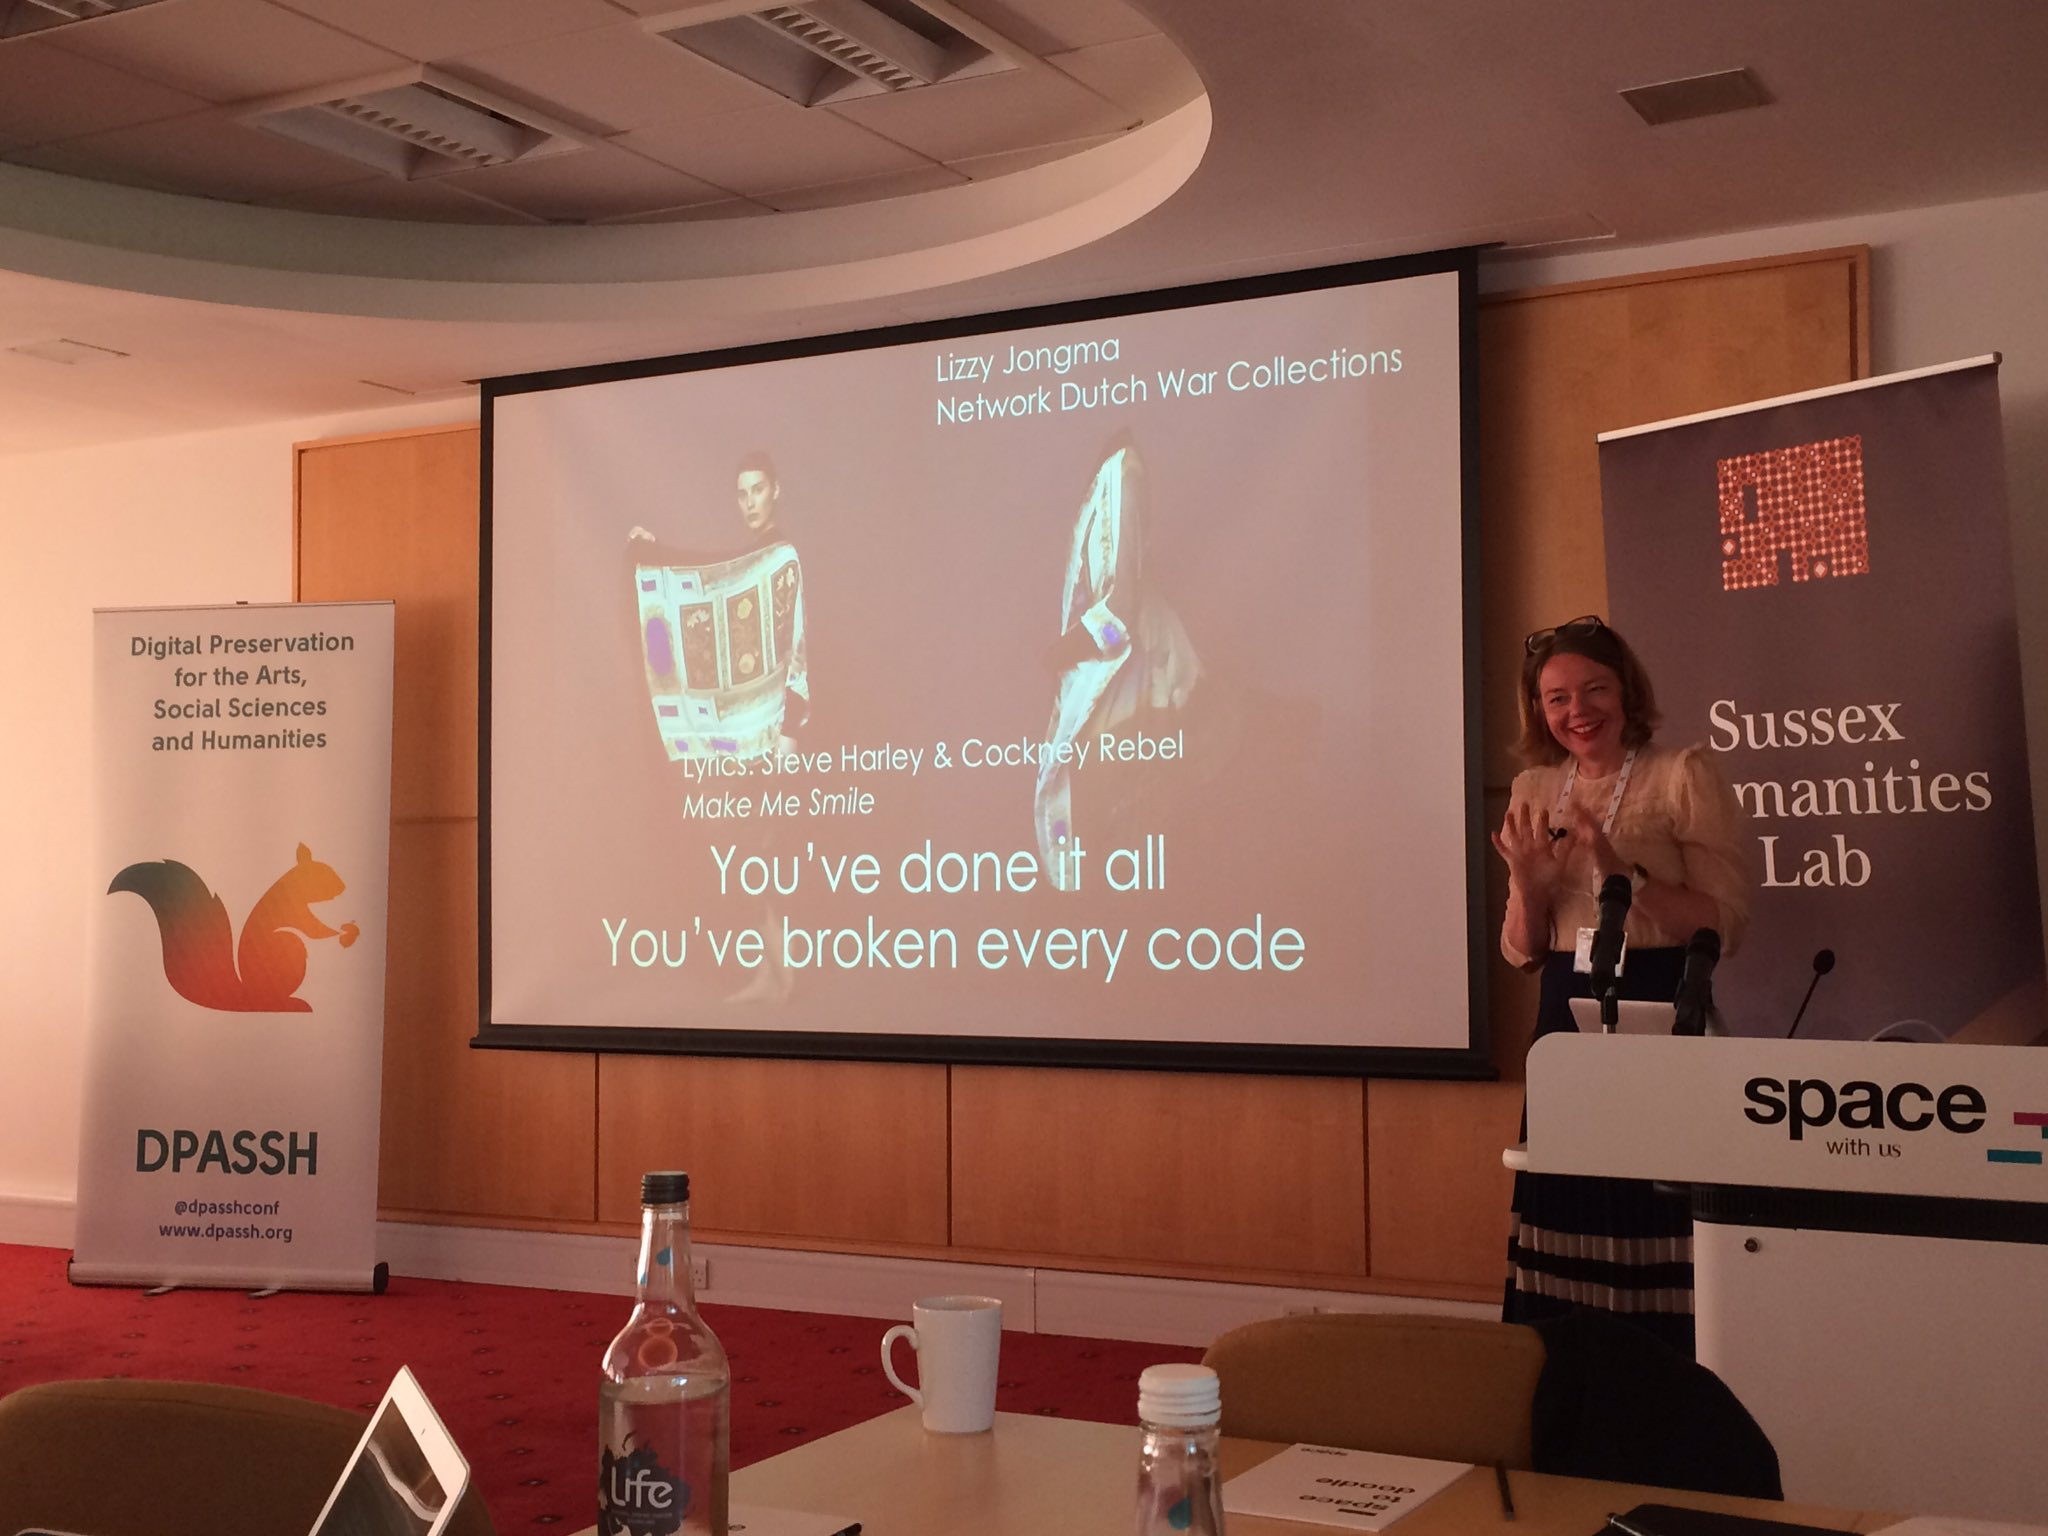 """Keynote talk #dpassh2017, """"You've done it all, you've broken every code: changing digital repositories into research spaces"""" by @LizzyJongma https://t.co/zVDI1Puc4c"""